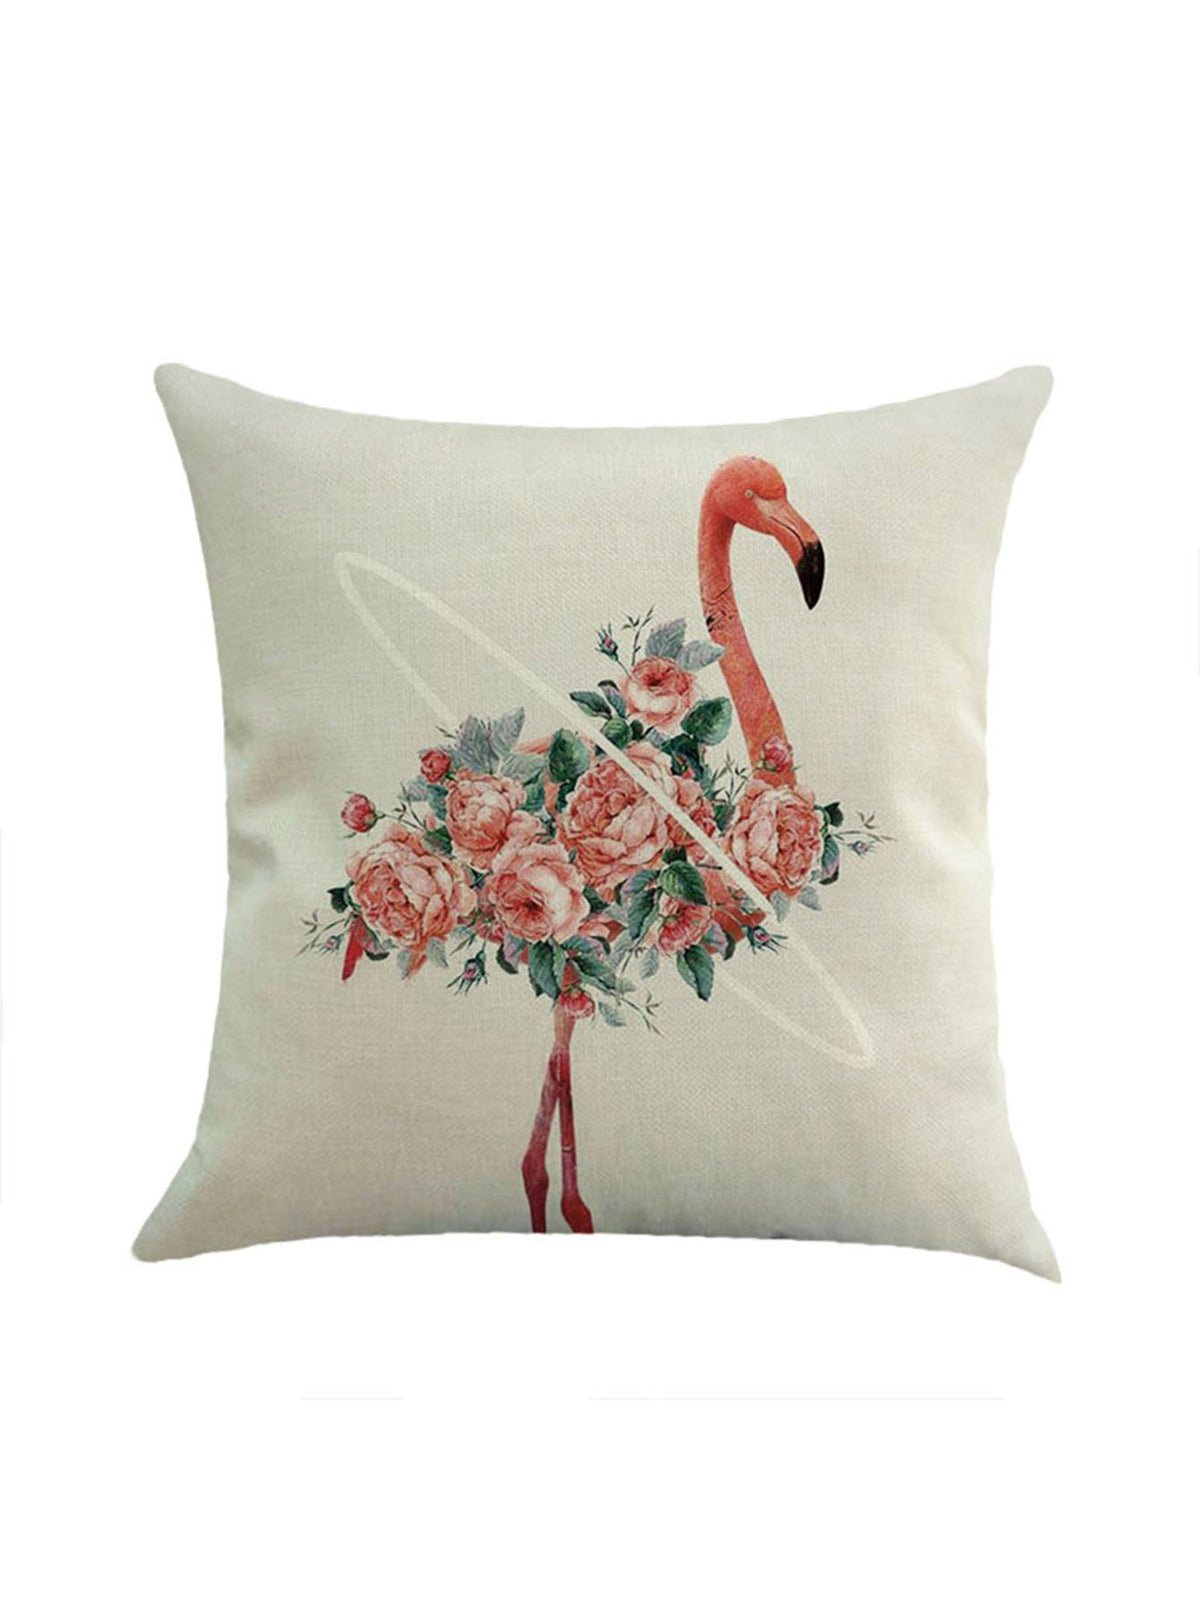 Flower & Flamingo Print Pillowcase Cover